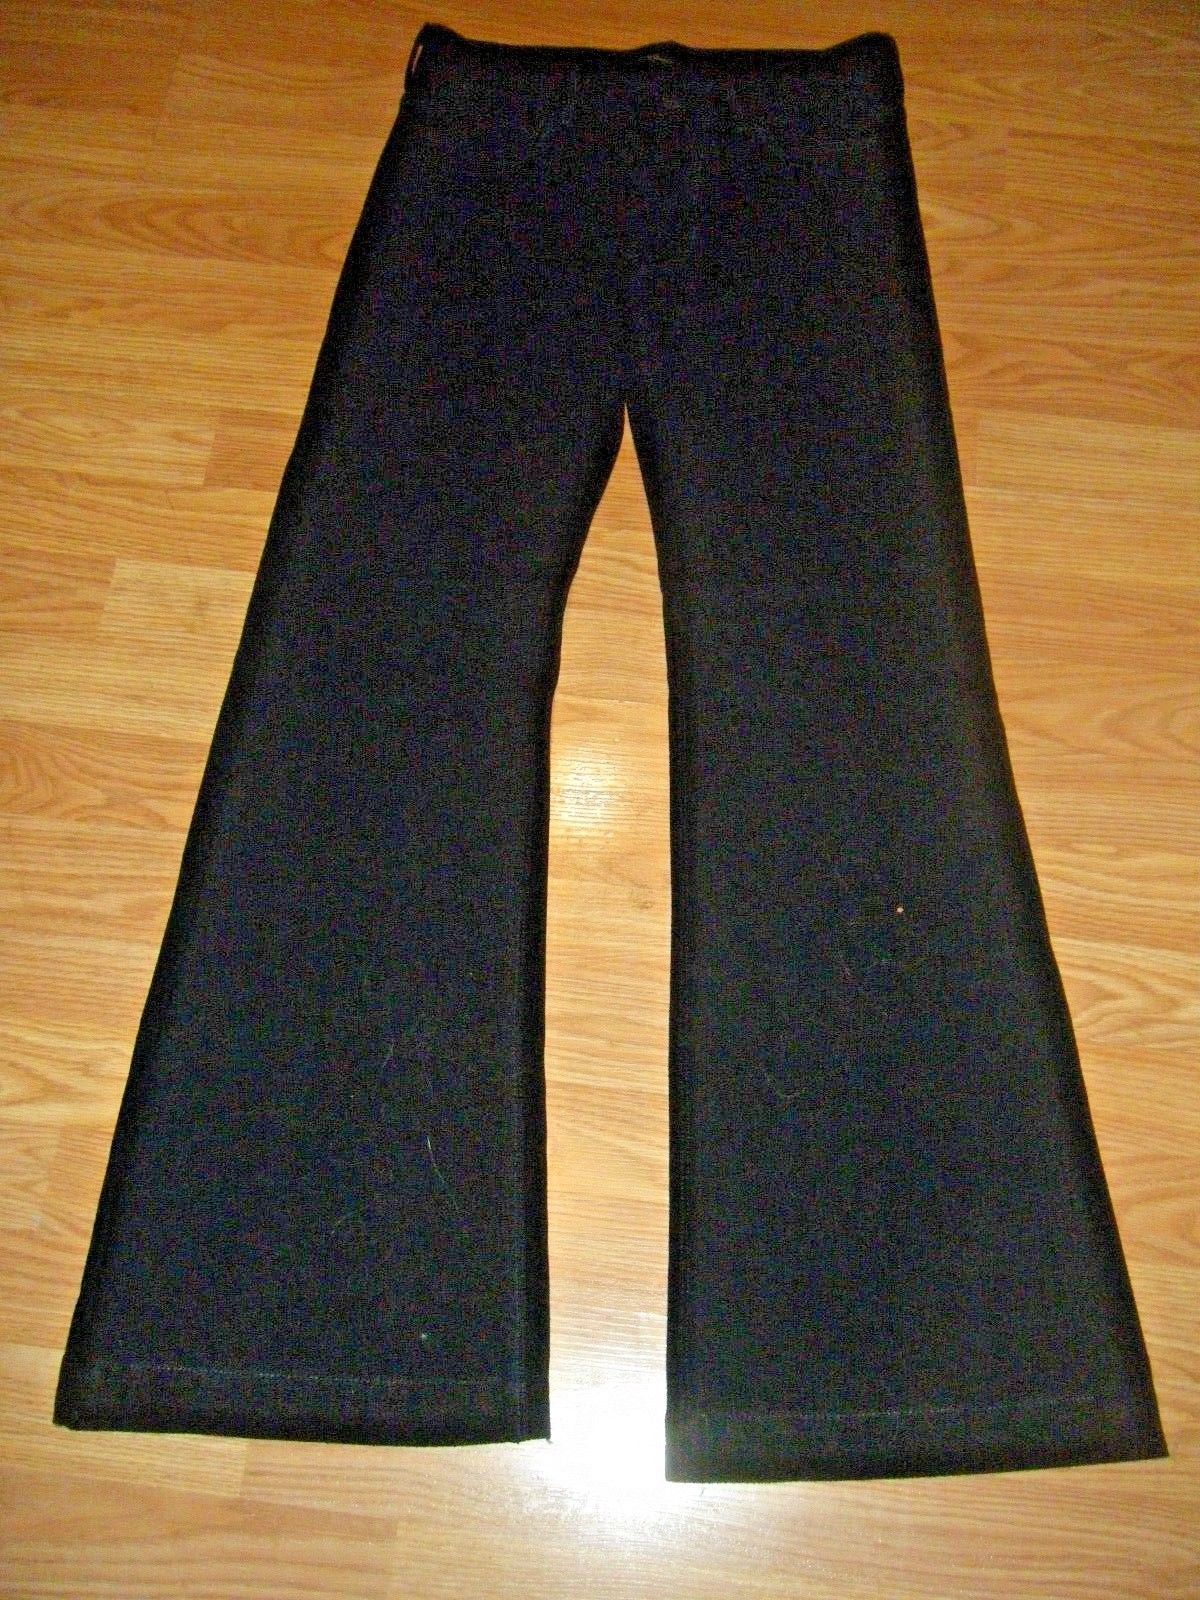 Primary image for SEVEN FOR ALL MANKIND BLACK STRETCH KNIT WIDE LEG JEANS SIZE 29